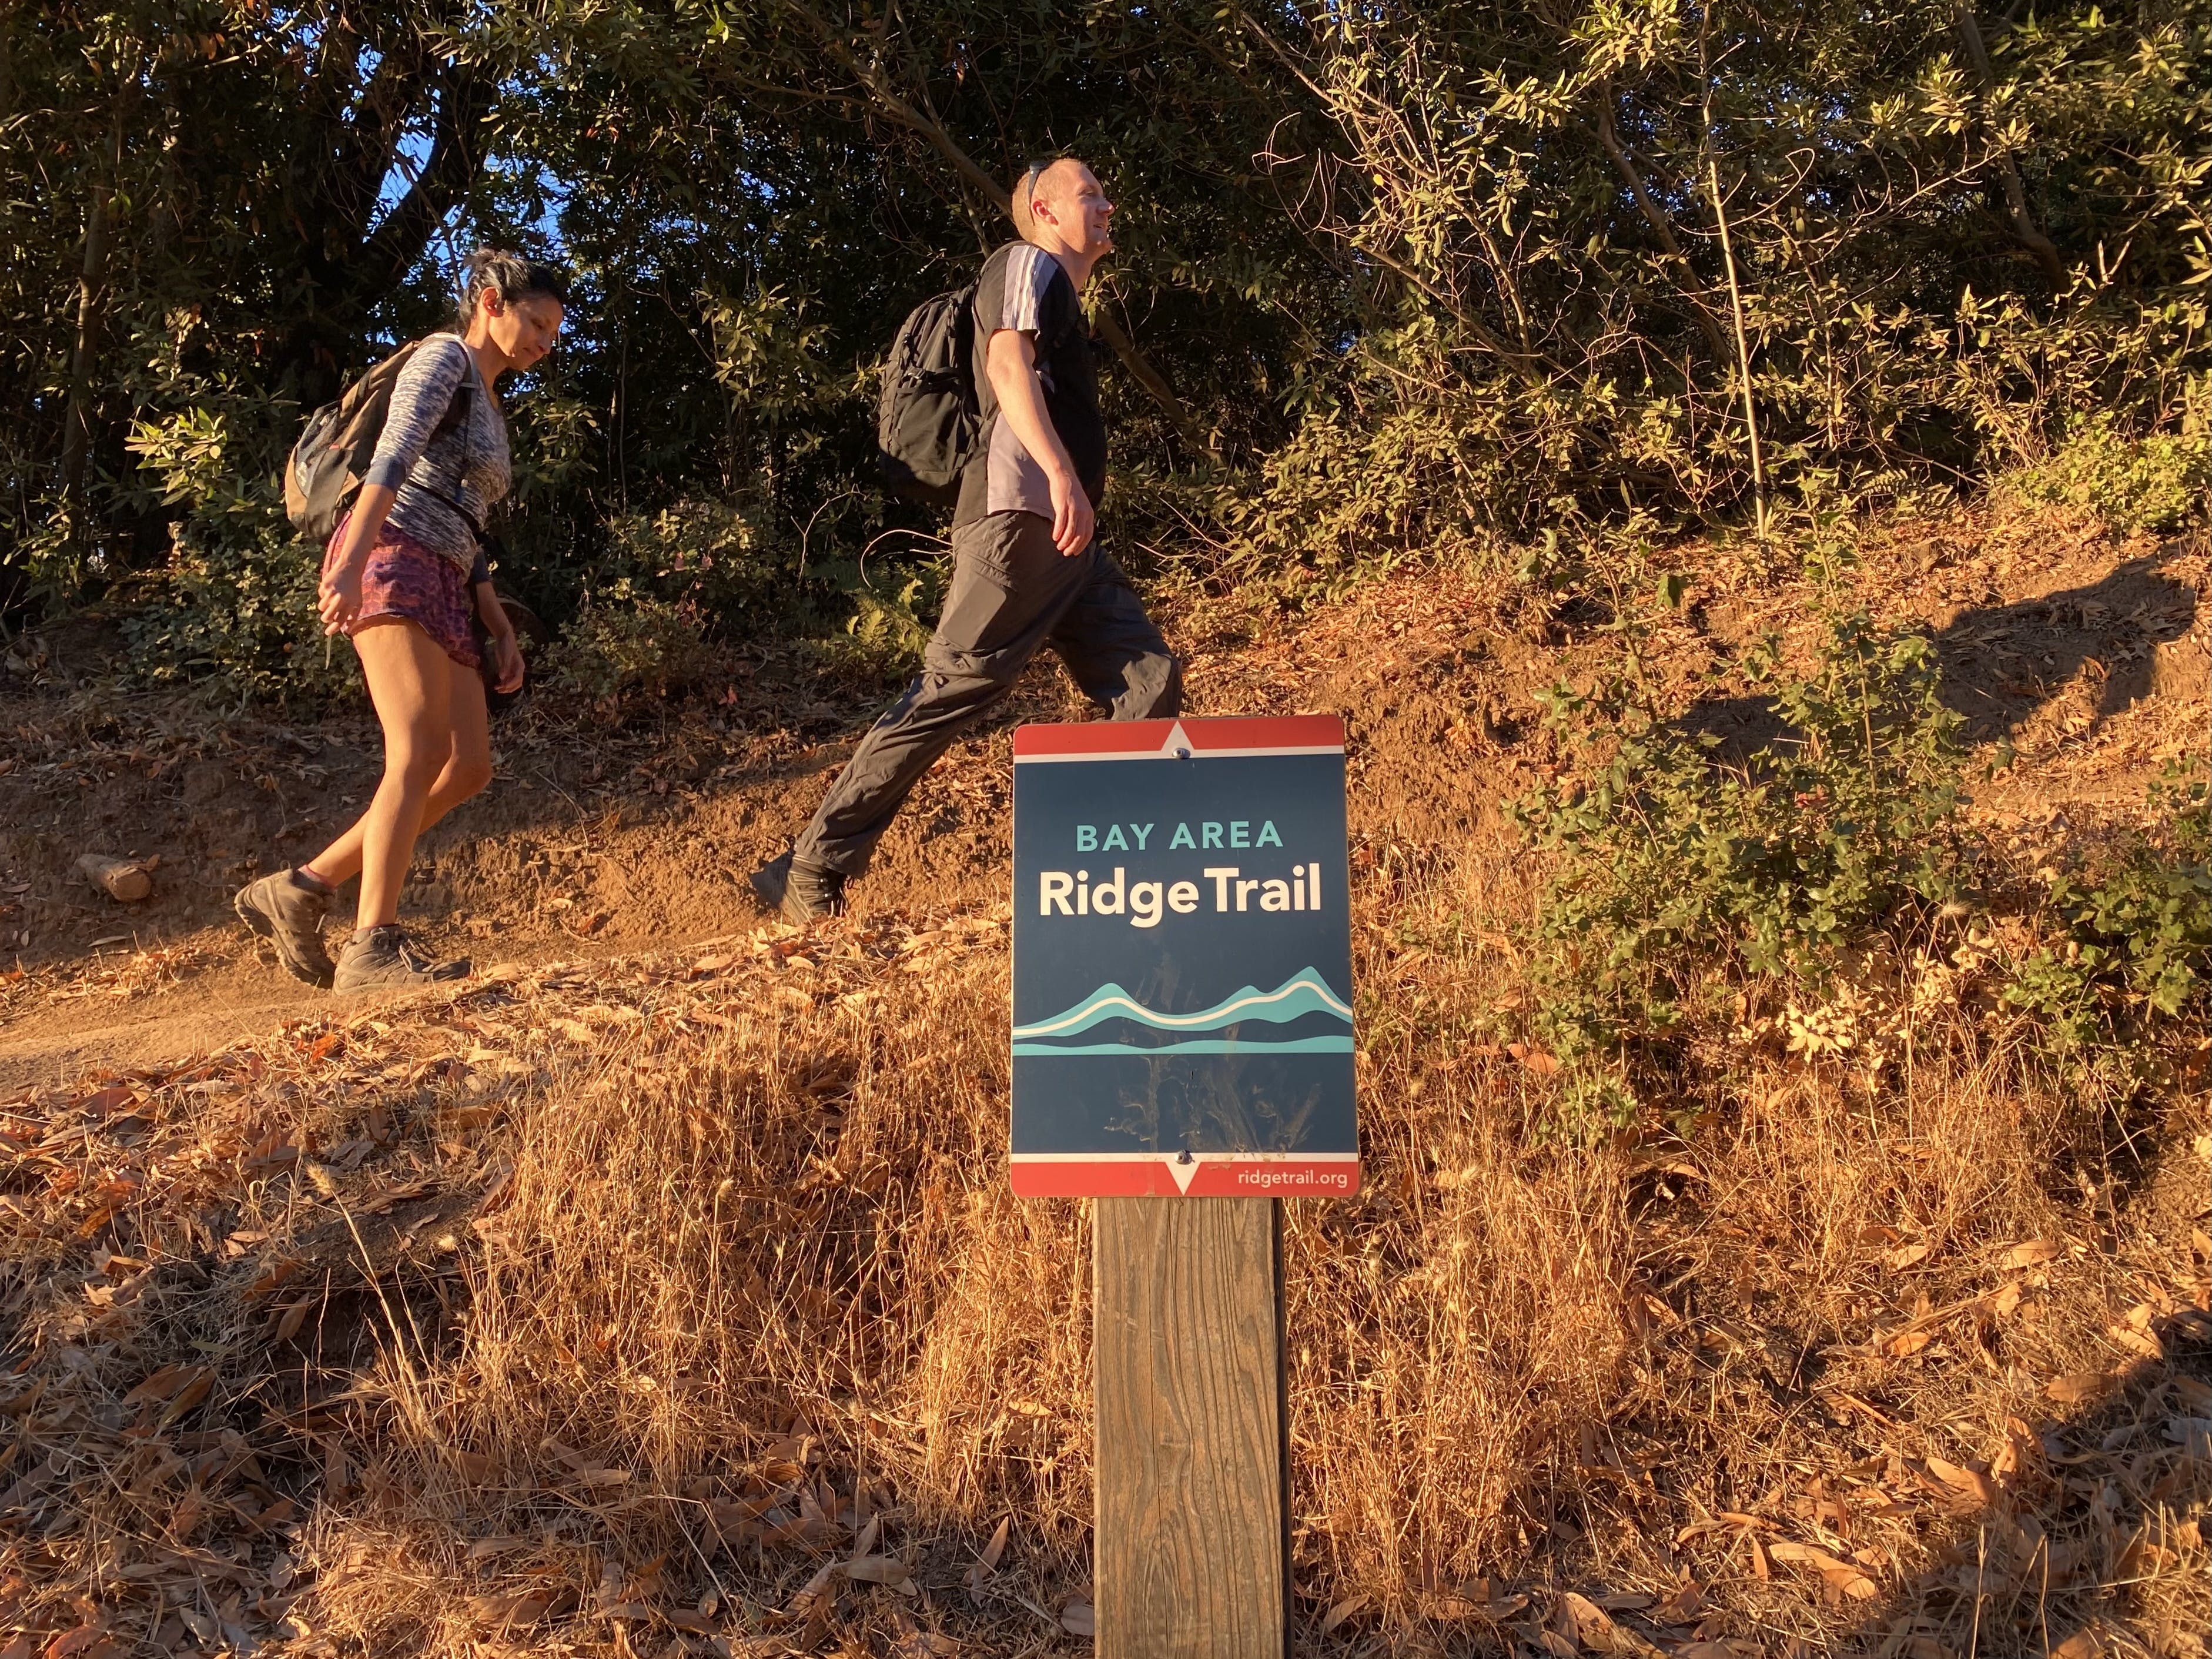 Two hikers heading up the Bay Area Ridge on the way up to the summit of Mount Umunhum